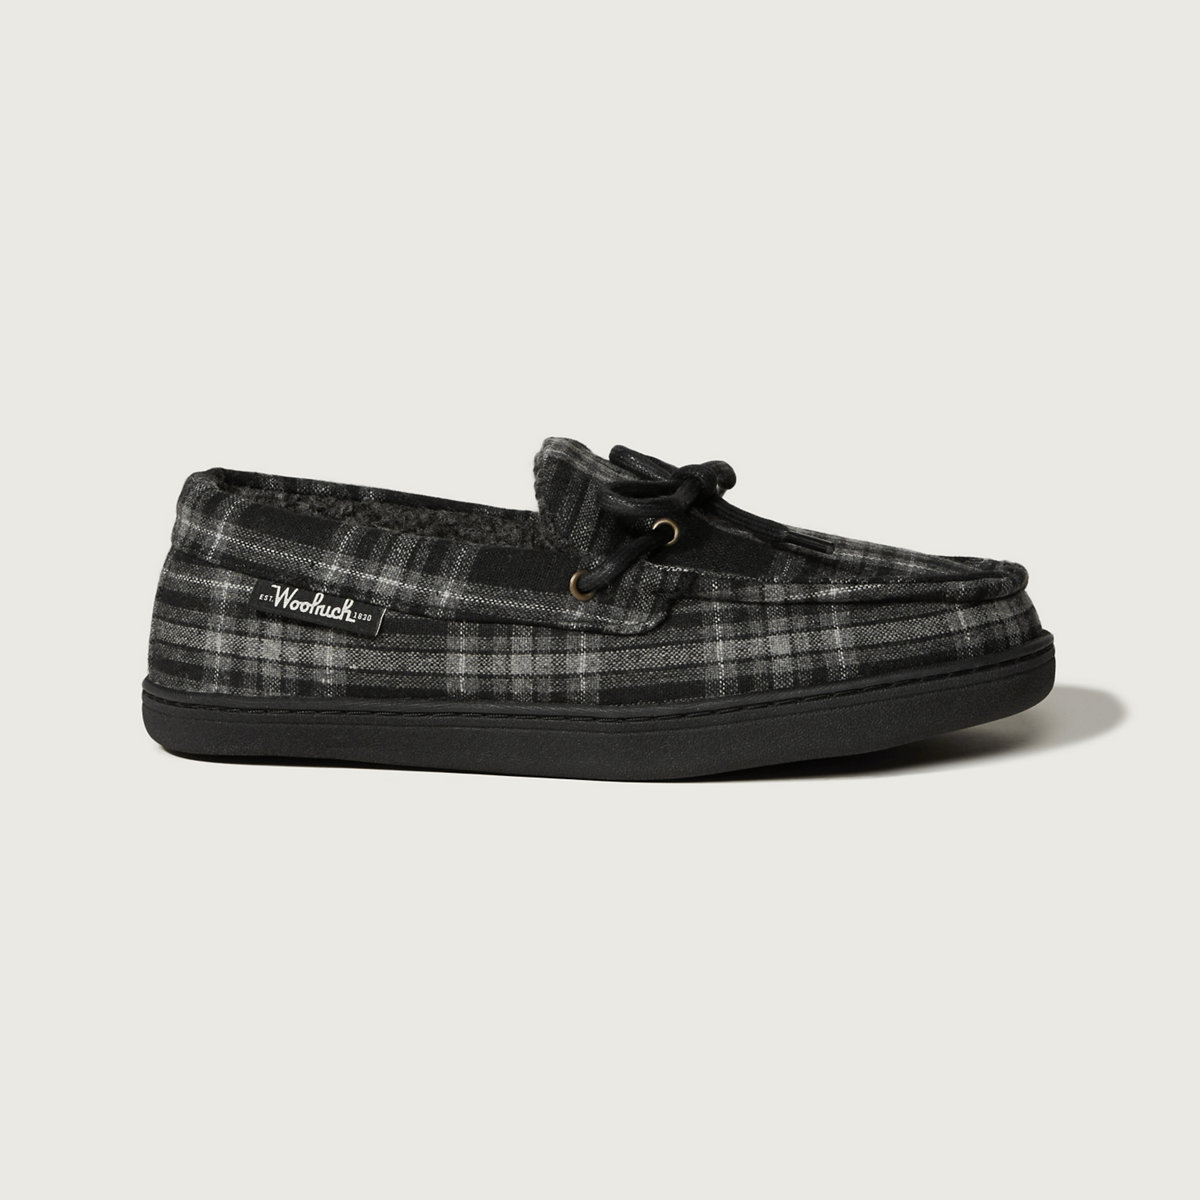 Woolrich Lewisburg Moccasin Slippers